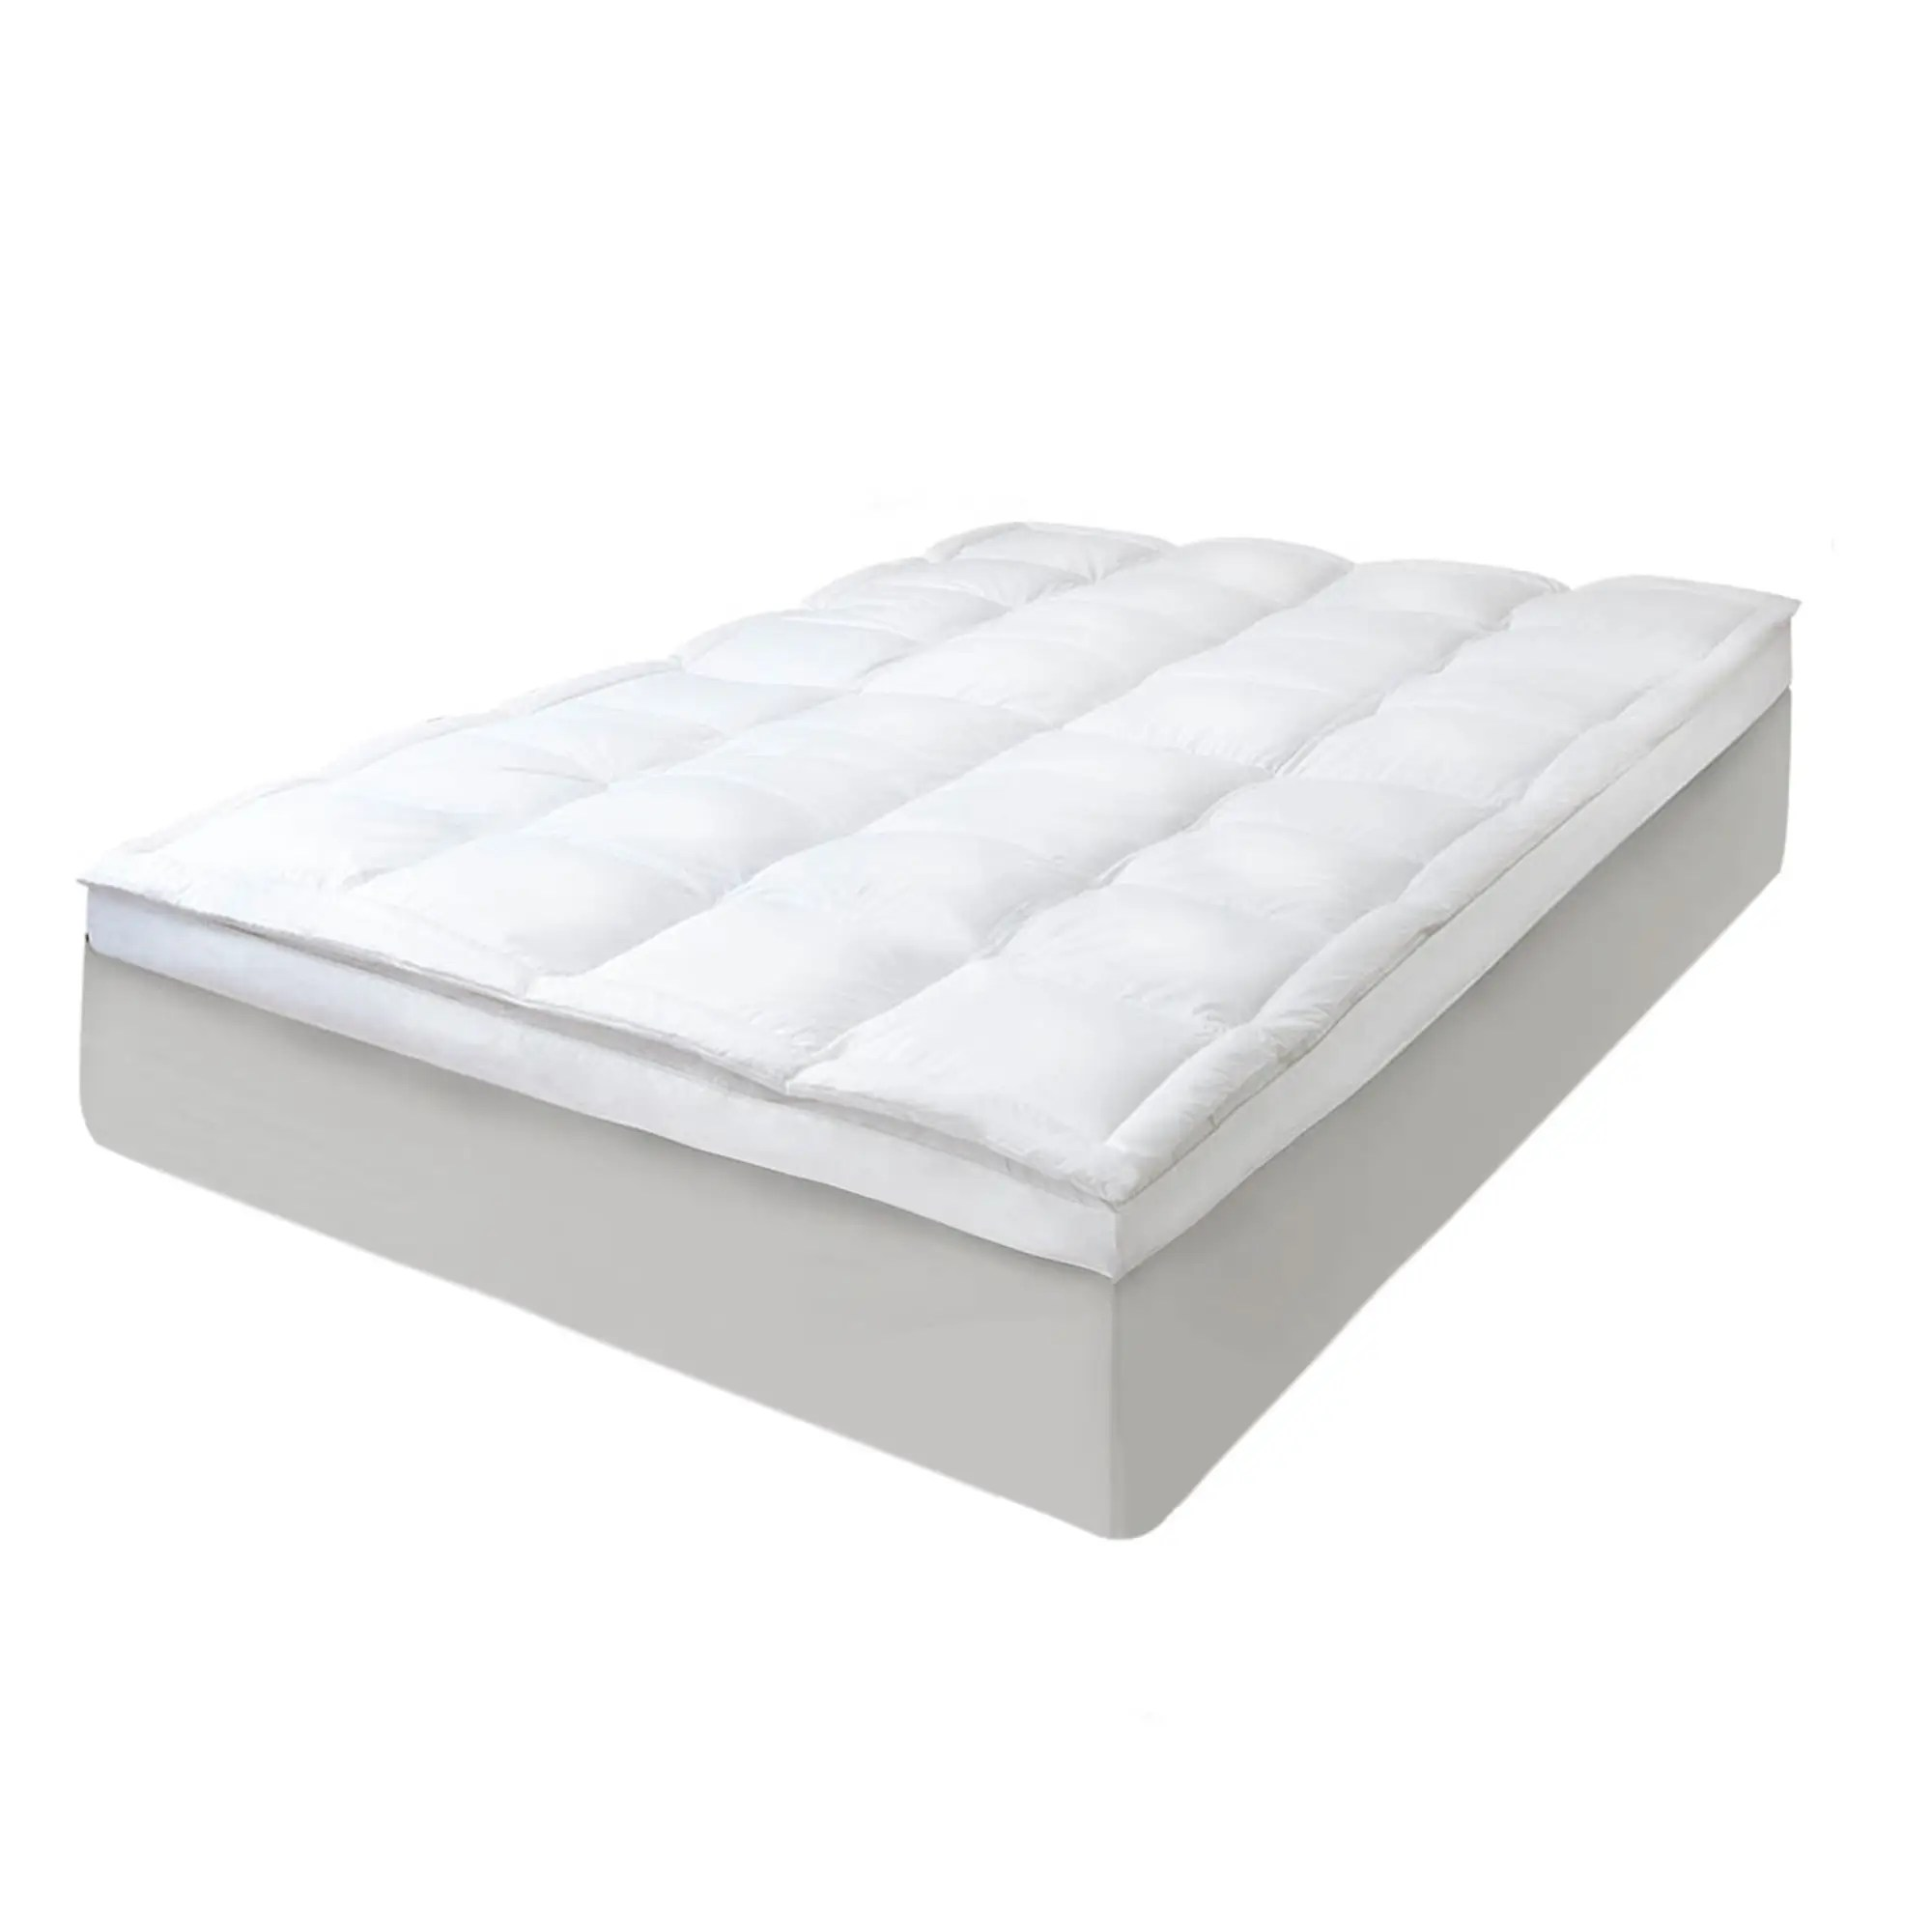 Best Mattress Toppers Australia White Down And Feather Mattress Topper Mattress Toppers Duvets